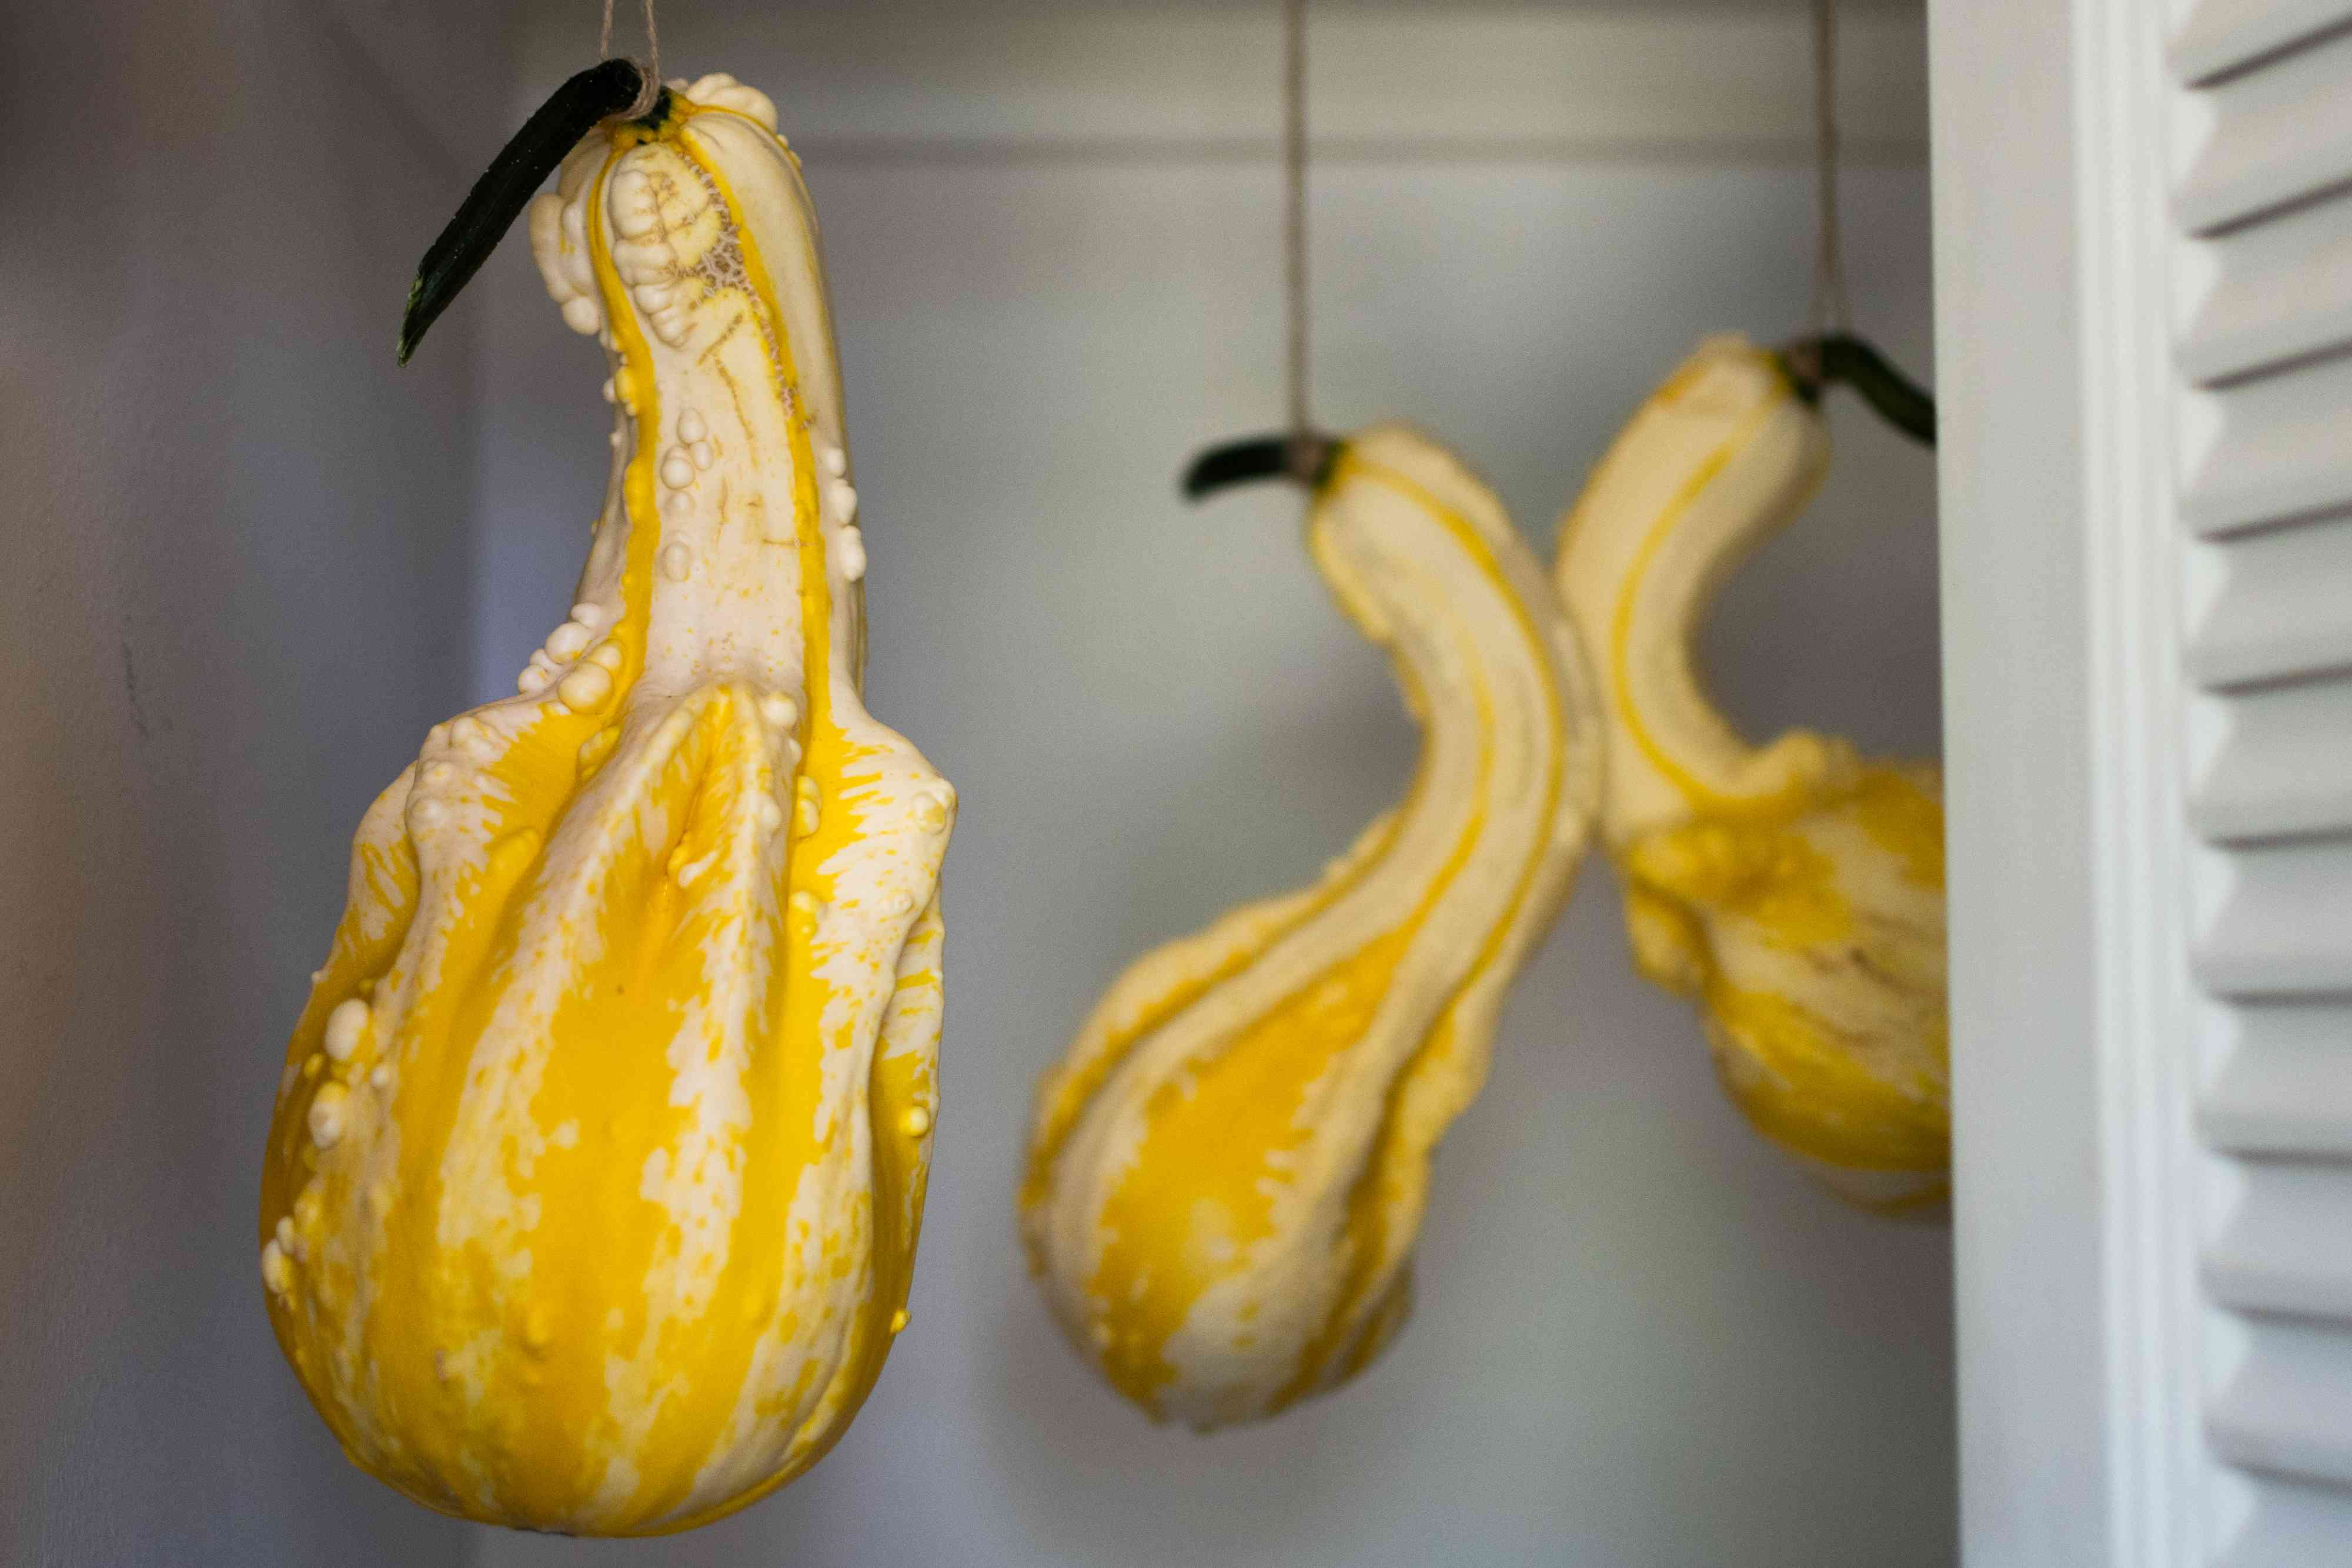 Yellow and white gourds hanging on twine in closet closeup